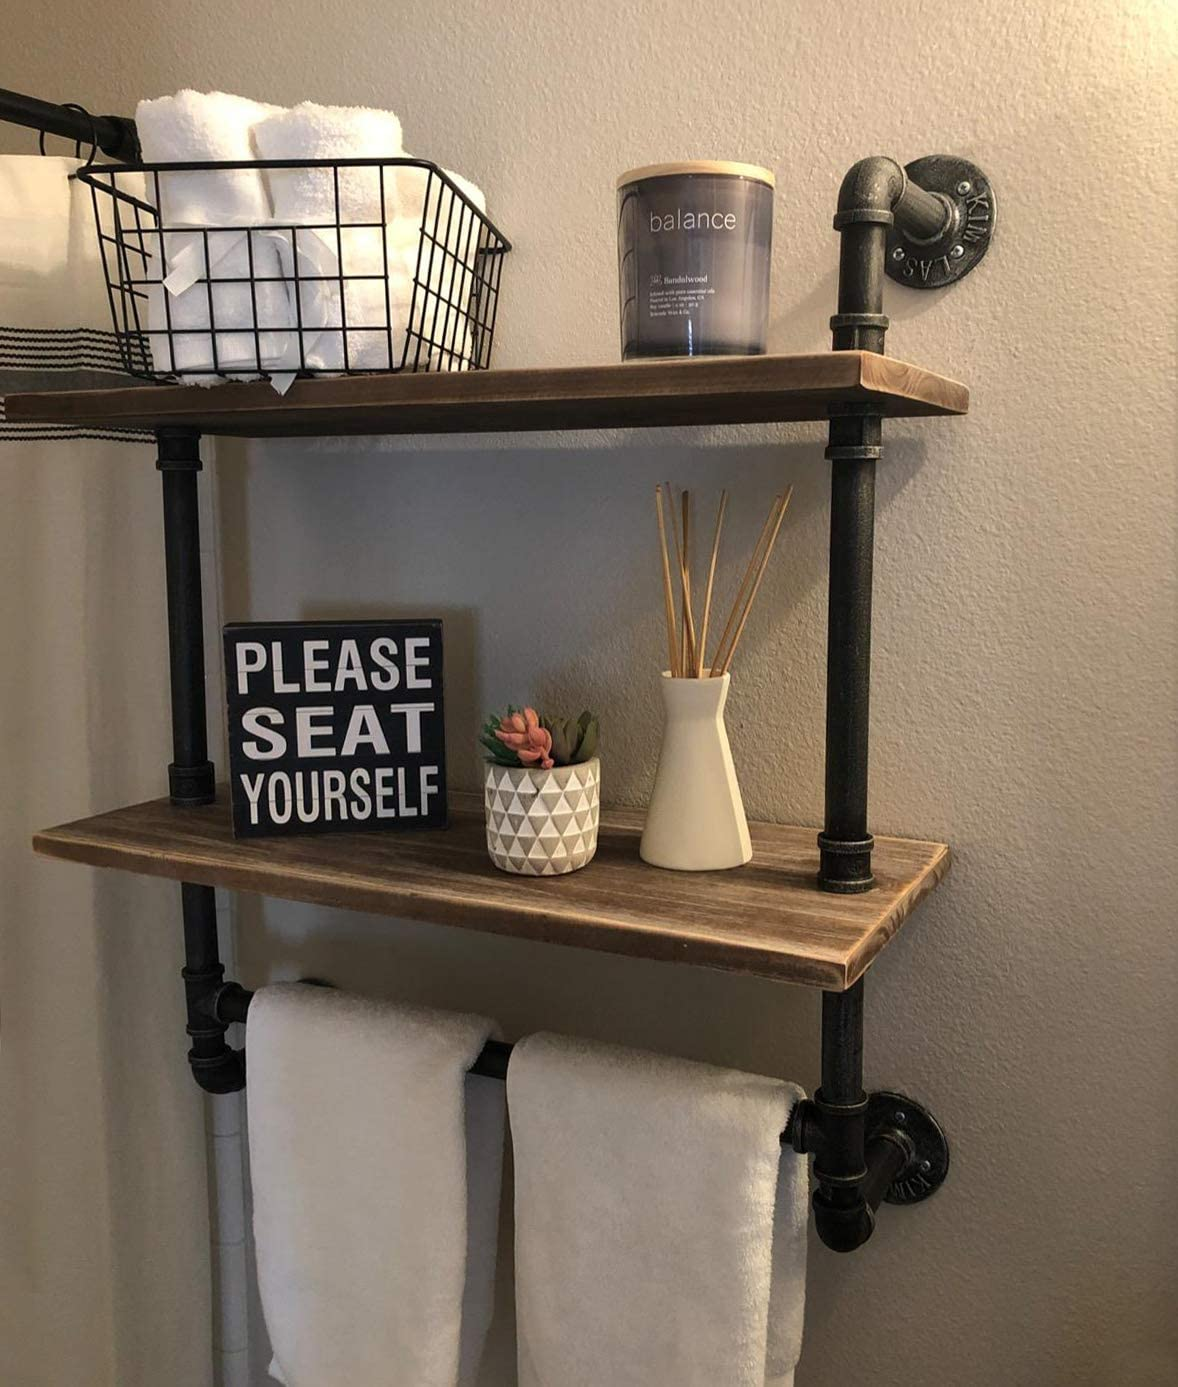 Industrial Pipe Shelf,Rustic Wall Shelf with Towel Bar,20 Towel Racks for Bathroom,2 Tiered Pipe Shelves Wood Shelf Shelving